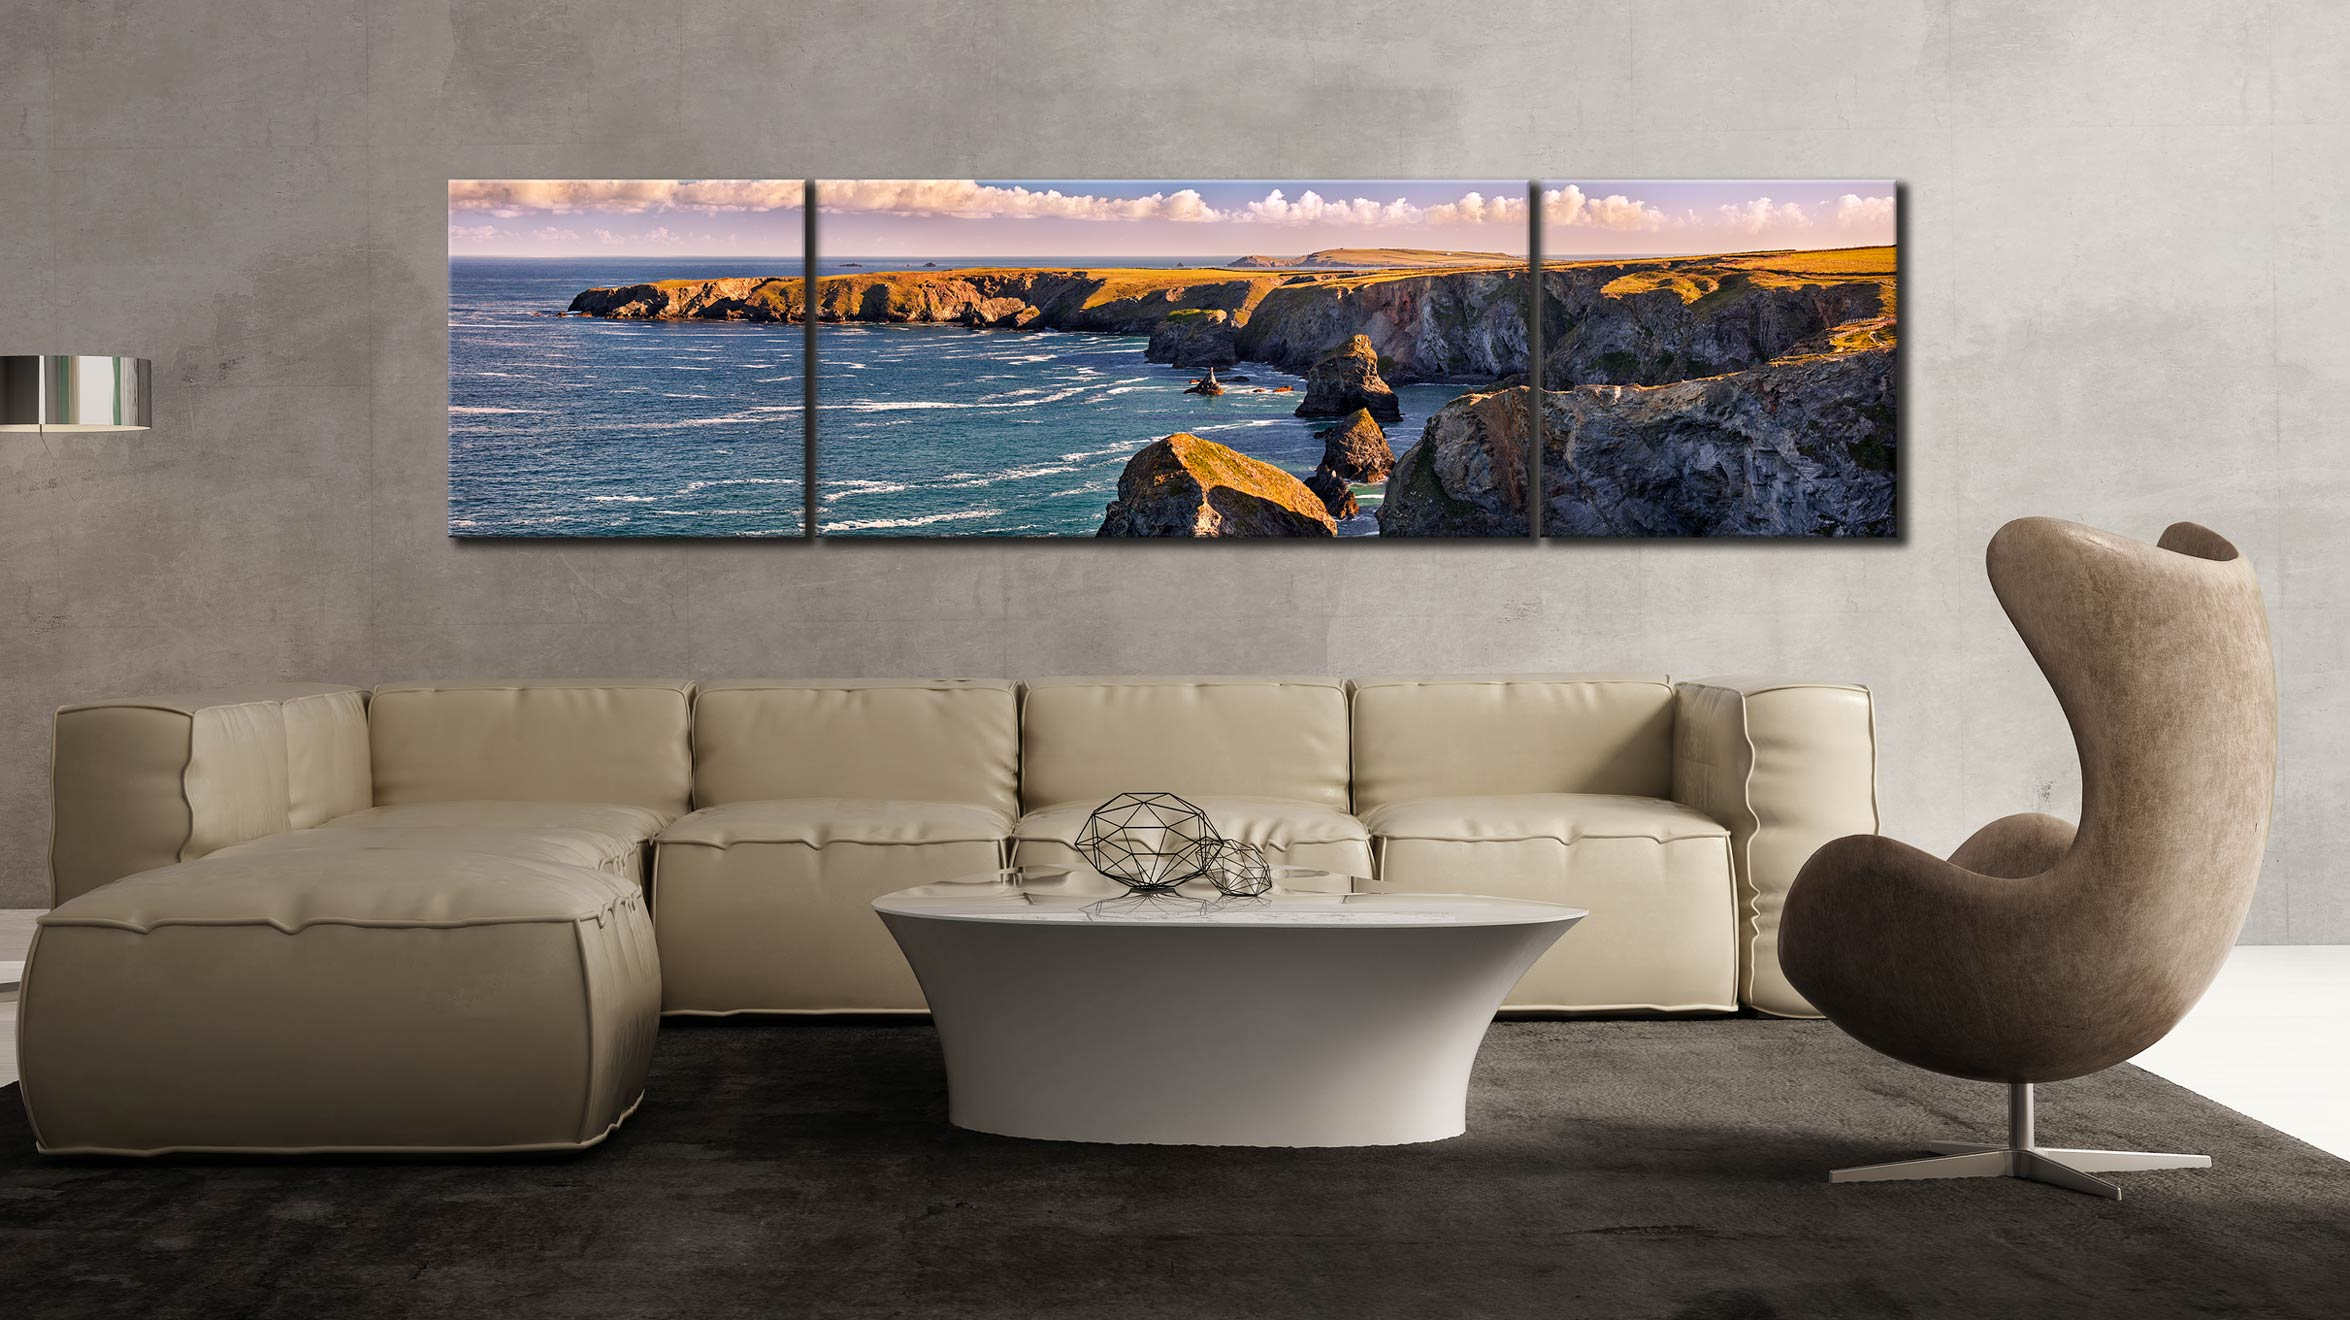 Bedruthan Steps Headland - 3 Panel Wide Centre Canvas on Wall